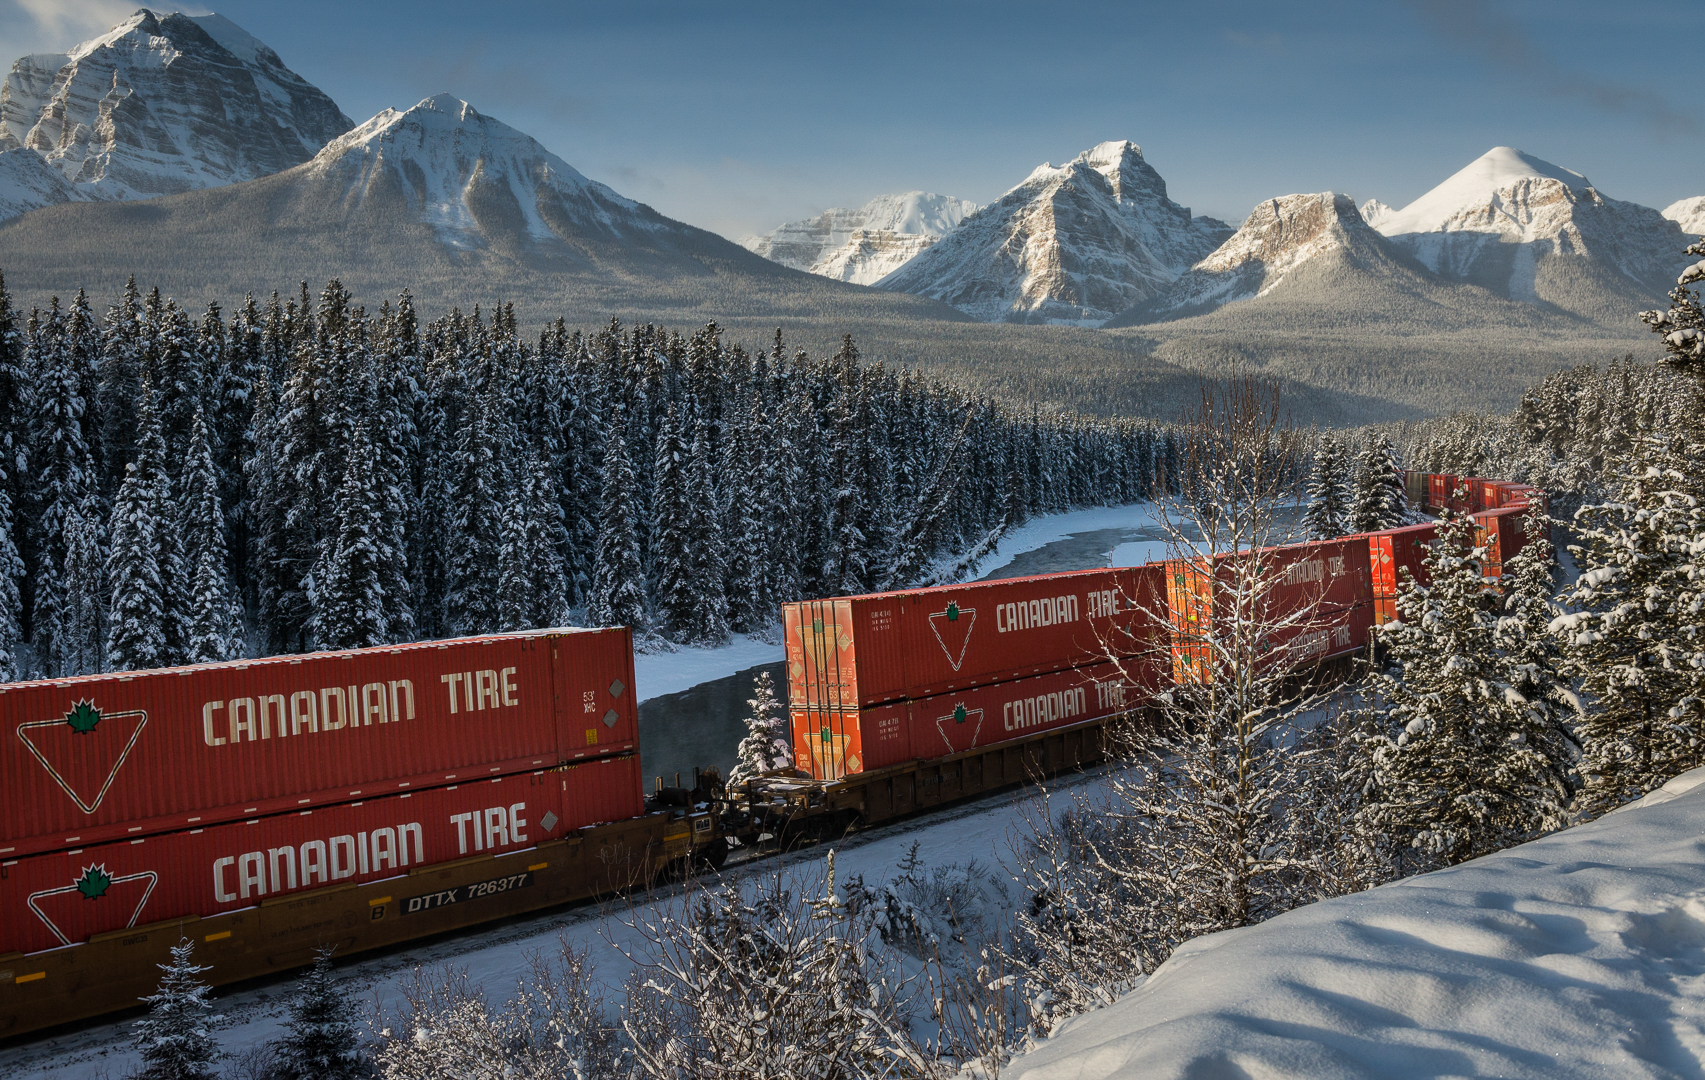 Transportation in Rocky Mountains